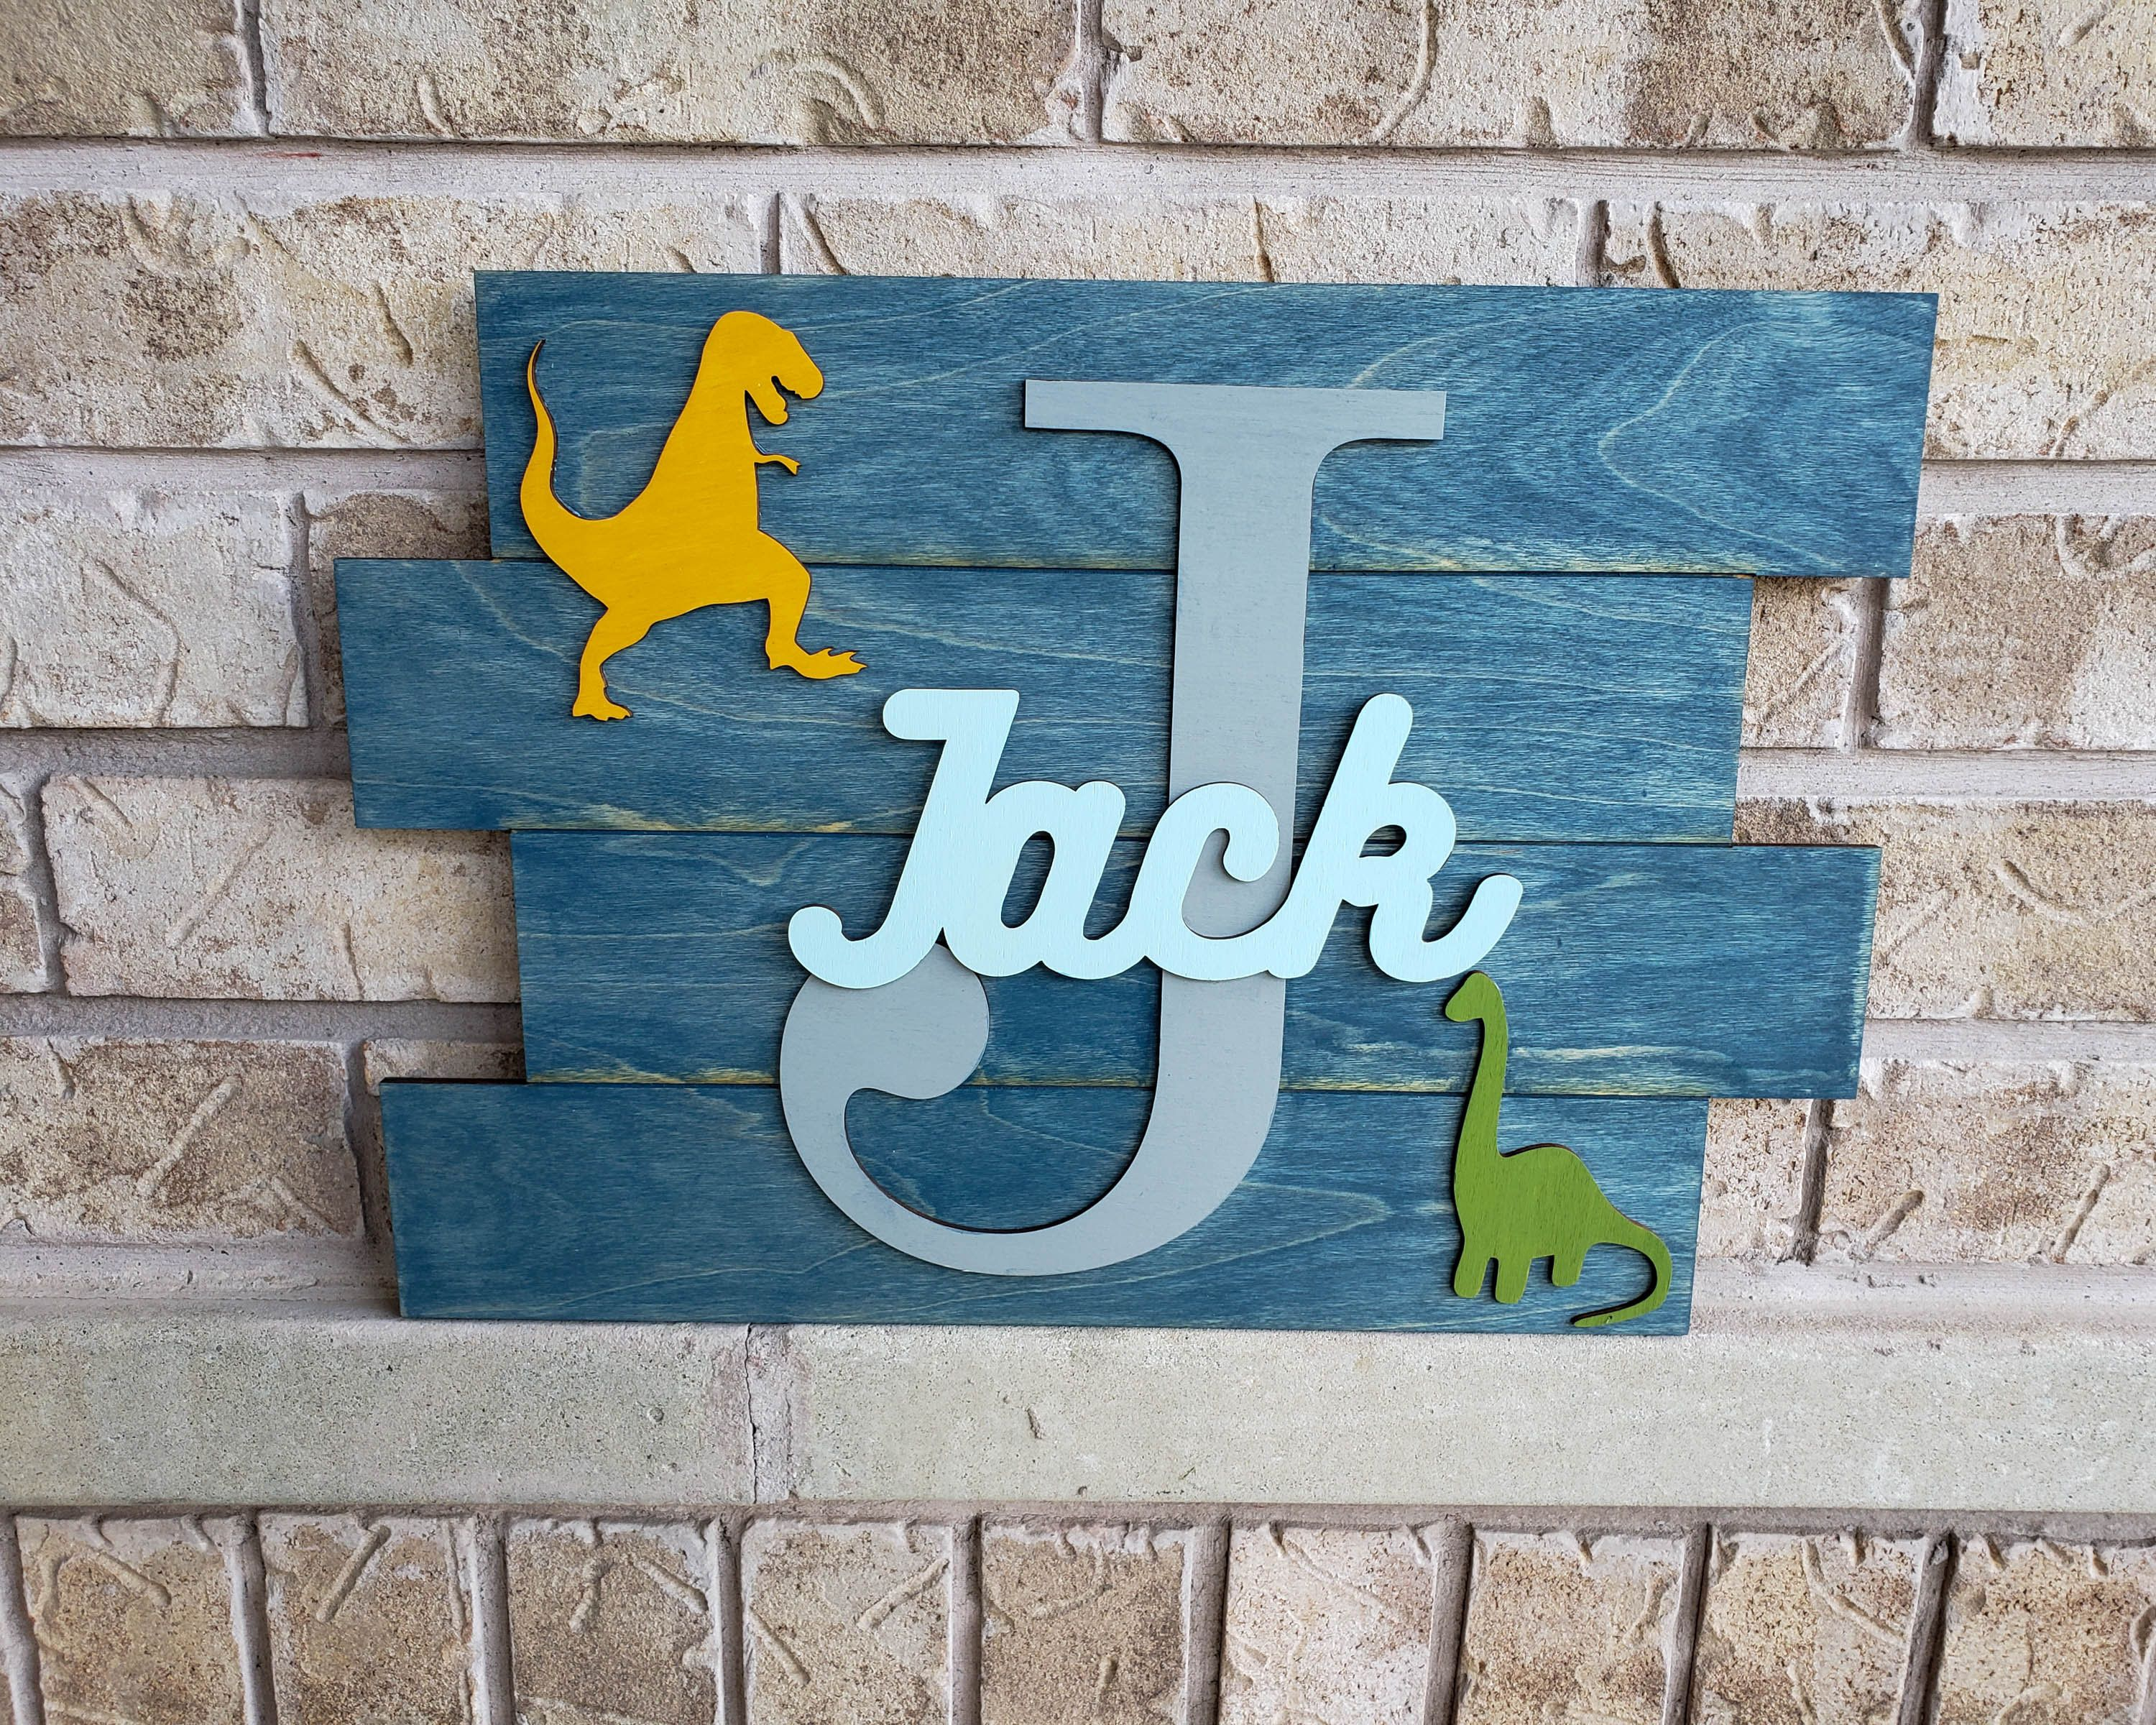 Dinosaur Decor, Dinosaur Wall Art, Kids Name Sign, Dinosaur Nursery Art, Wood Pallet Sign, Dinosaur Bedroom Decor, Dino Nursery Decor #dinosaurnursery